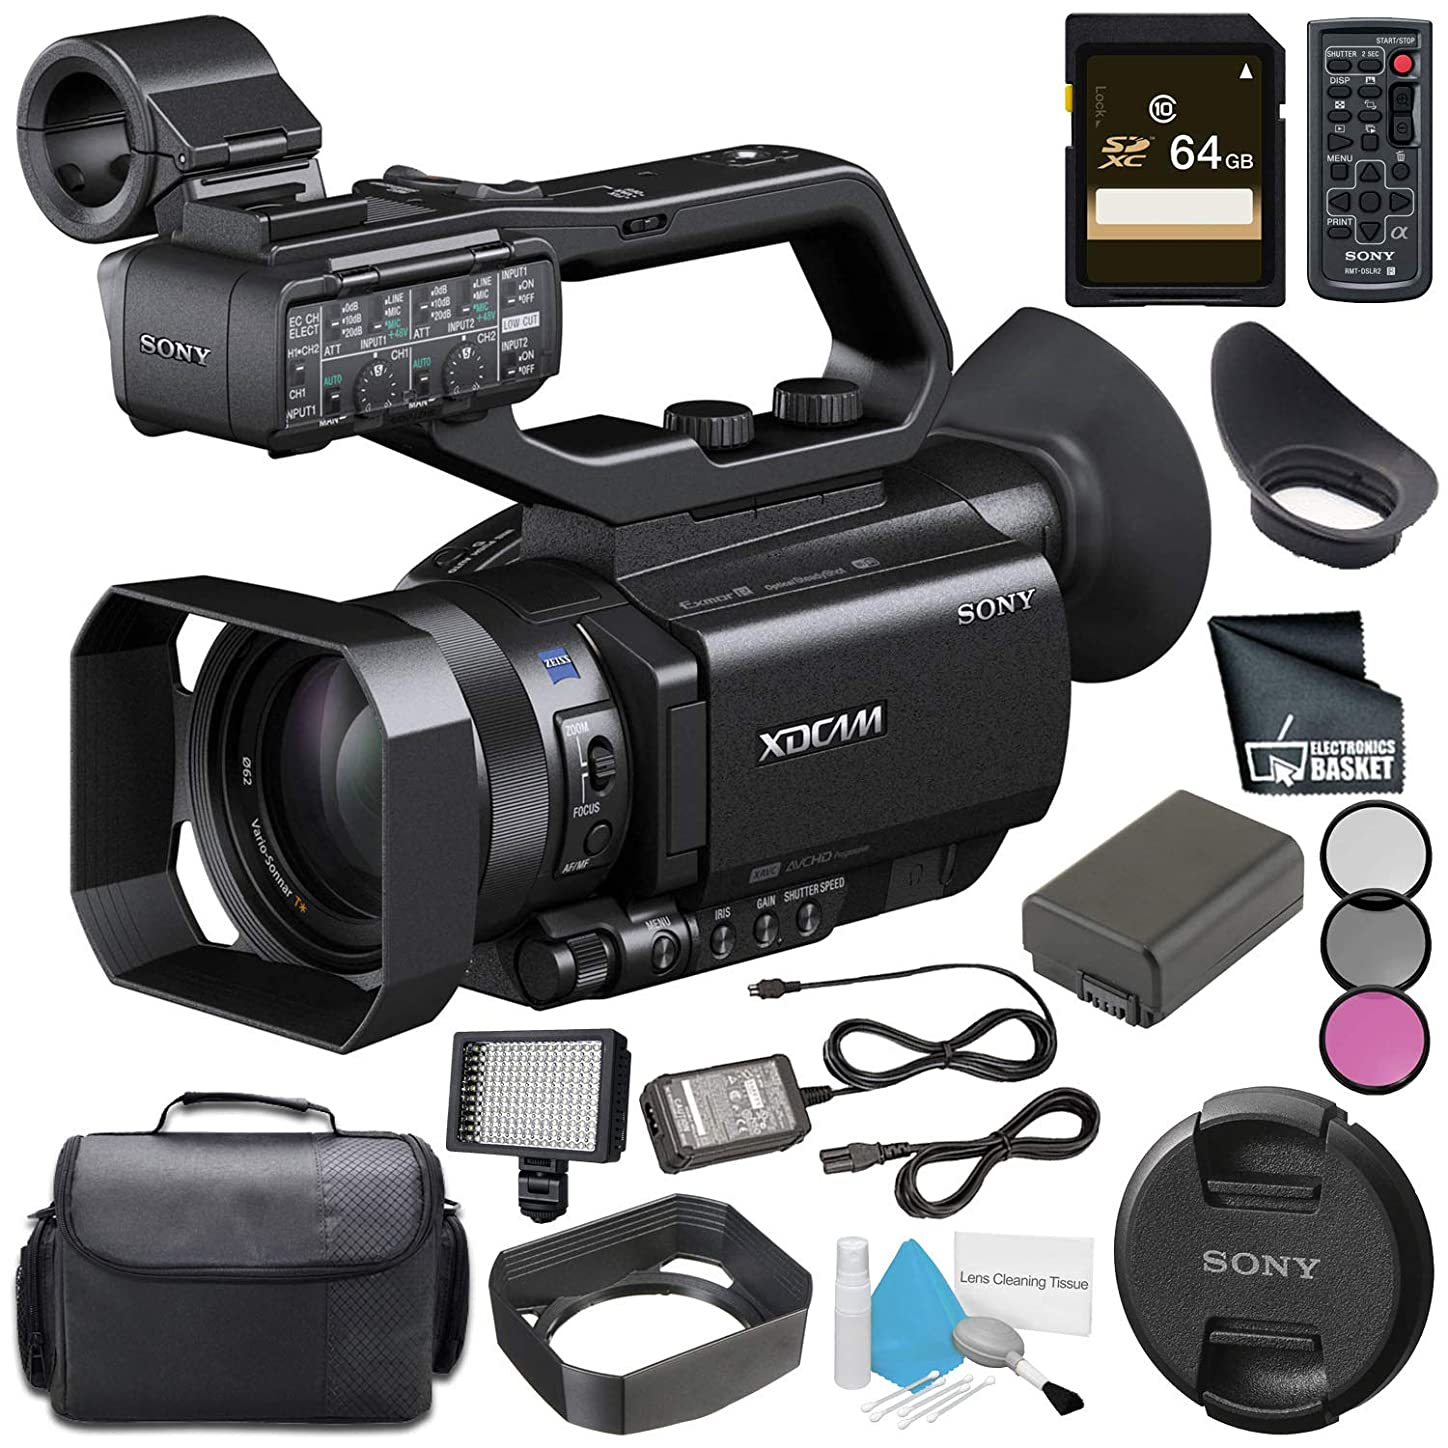 Sony PXW-X70 Professional XDCAM Compact Camcorder with 4K Upgrade License + NP-FV70 Replacement Lithium Ion Battery + 64GB SDXC Card + Professional 160 LED Video Light Studio Series Bundle yzwrafb767030